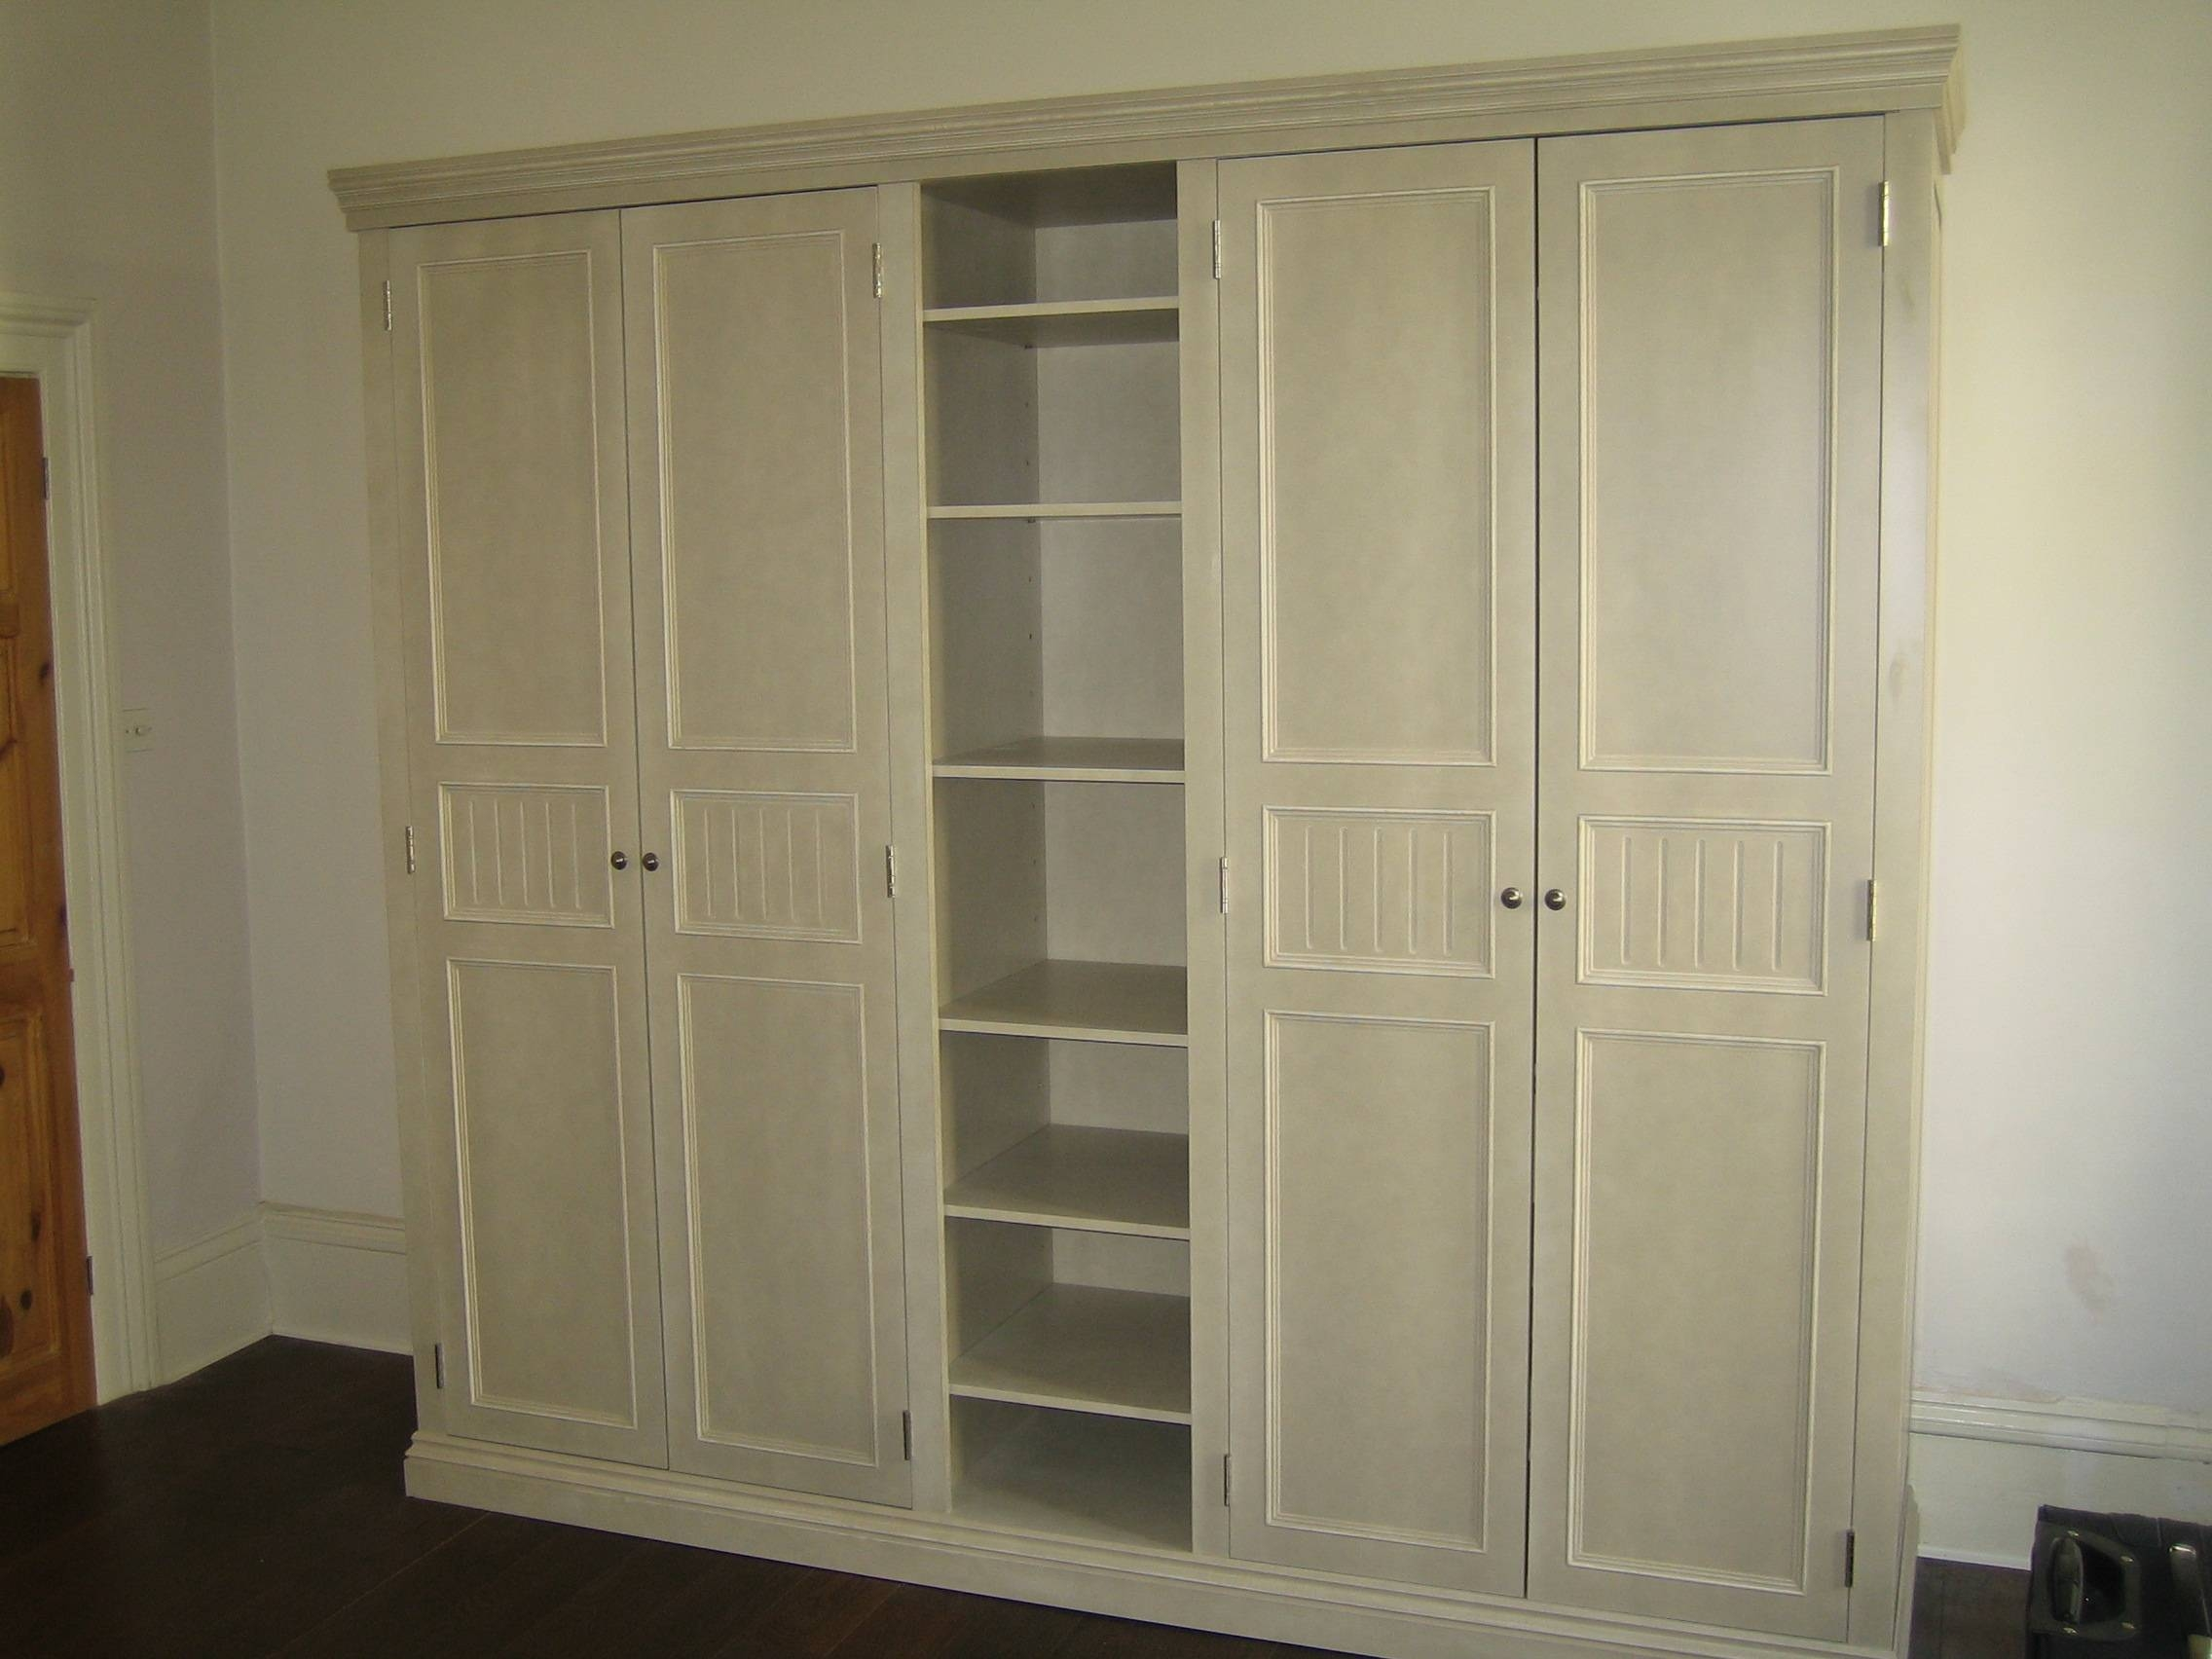 Glamorous Antique Bedroom Armoire Wardrobe Closet Antique French with French Built in Wardrobes (Image 11 of 15)